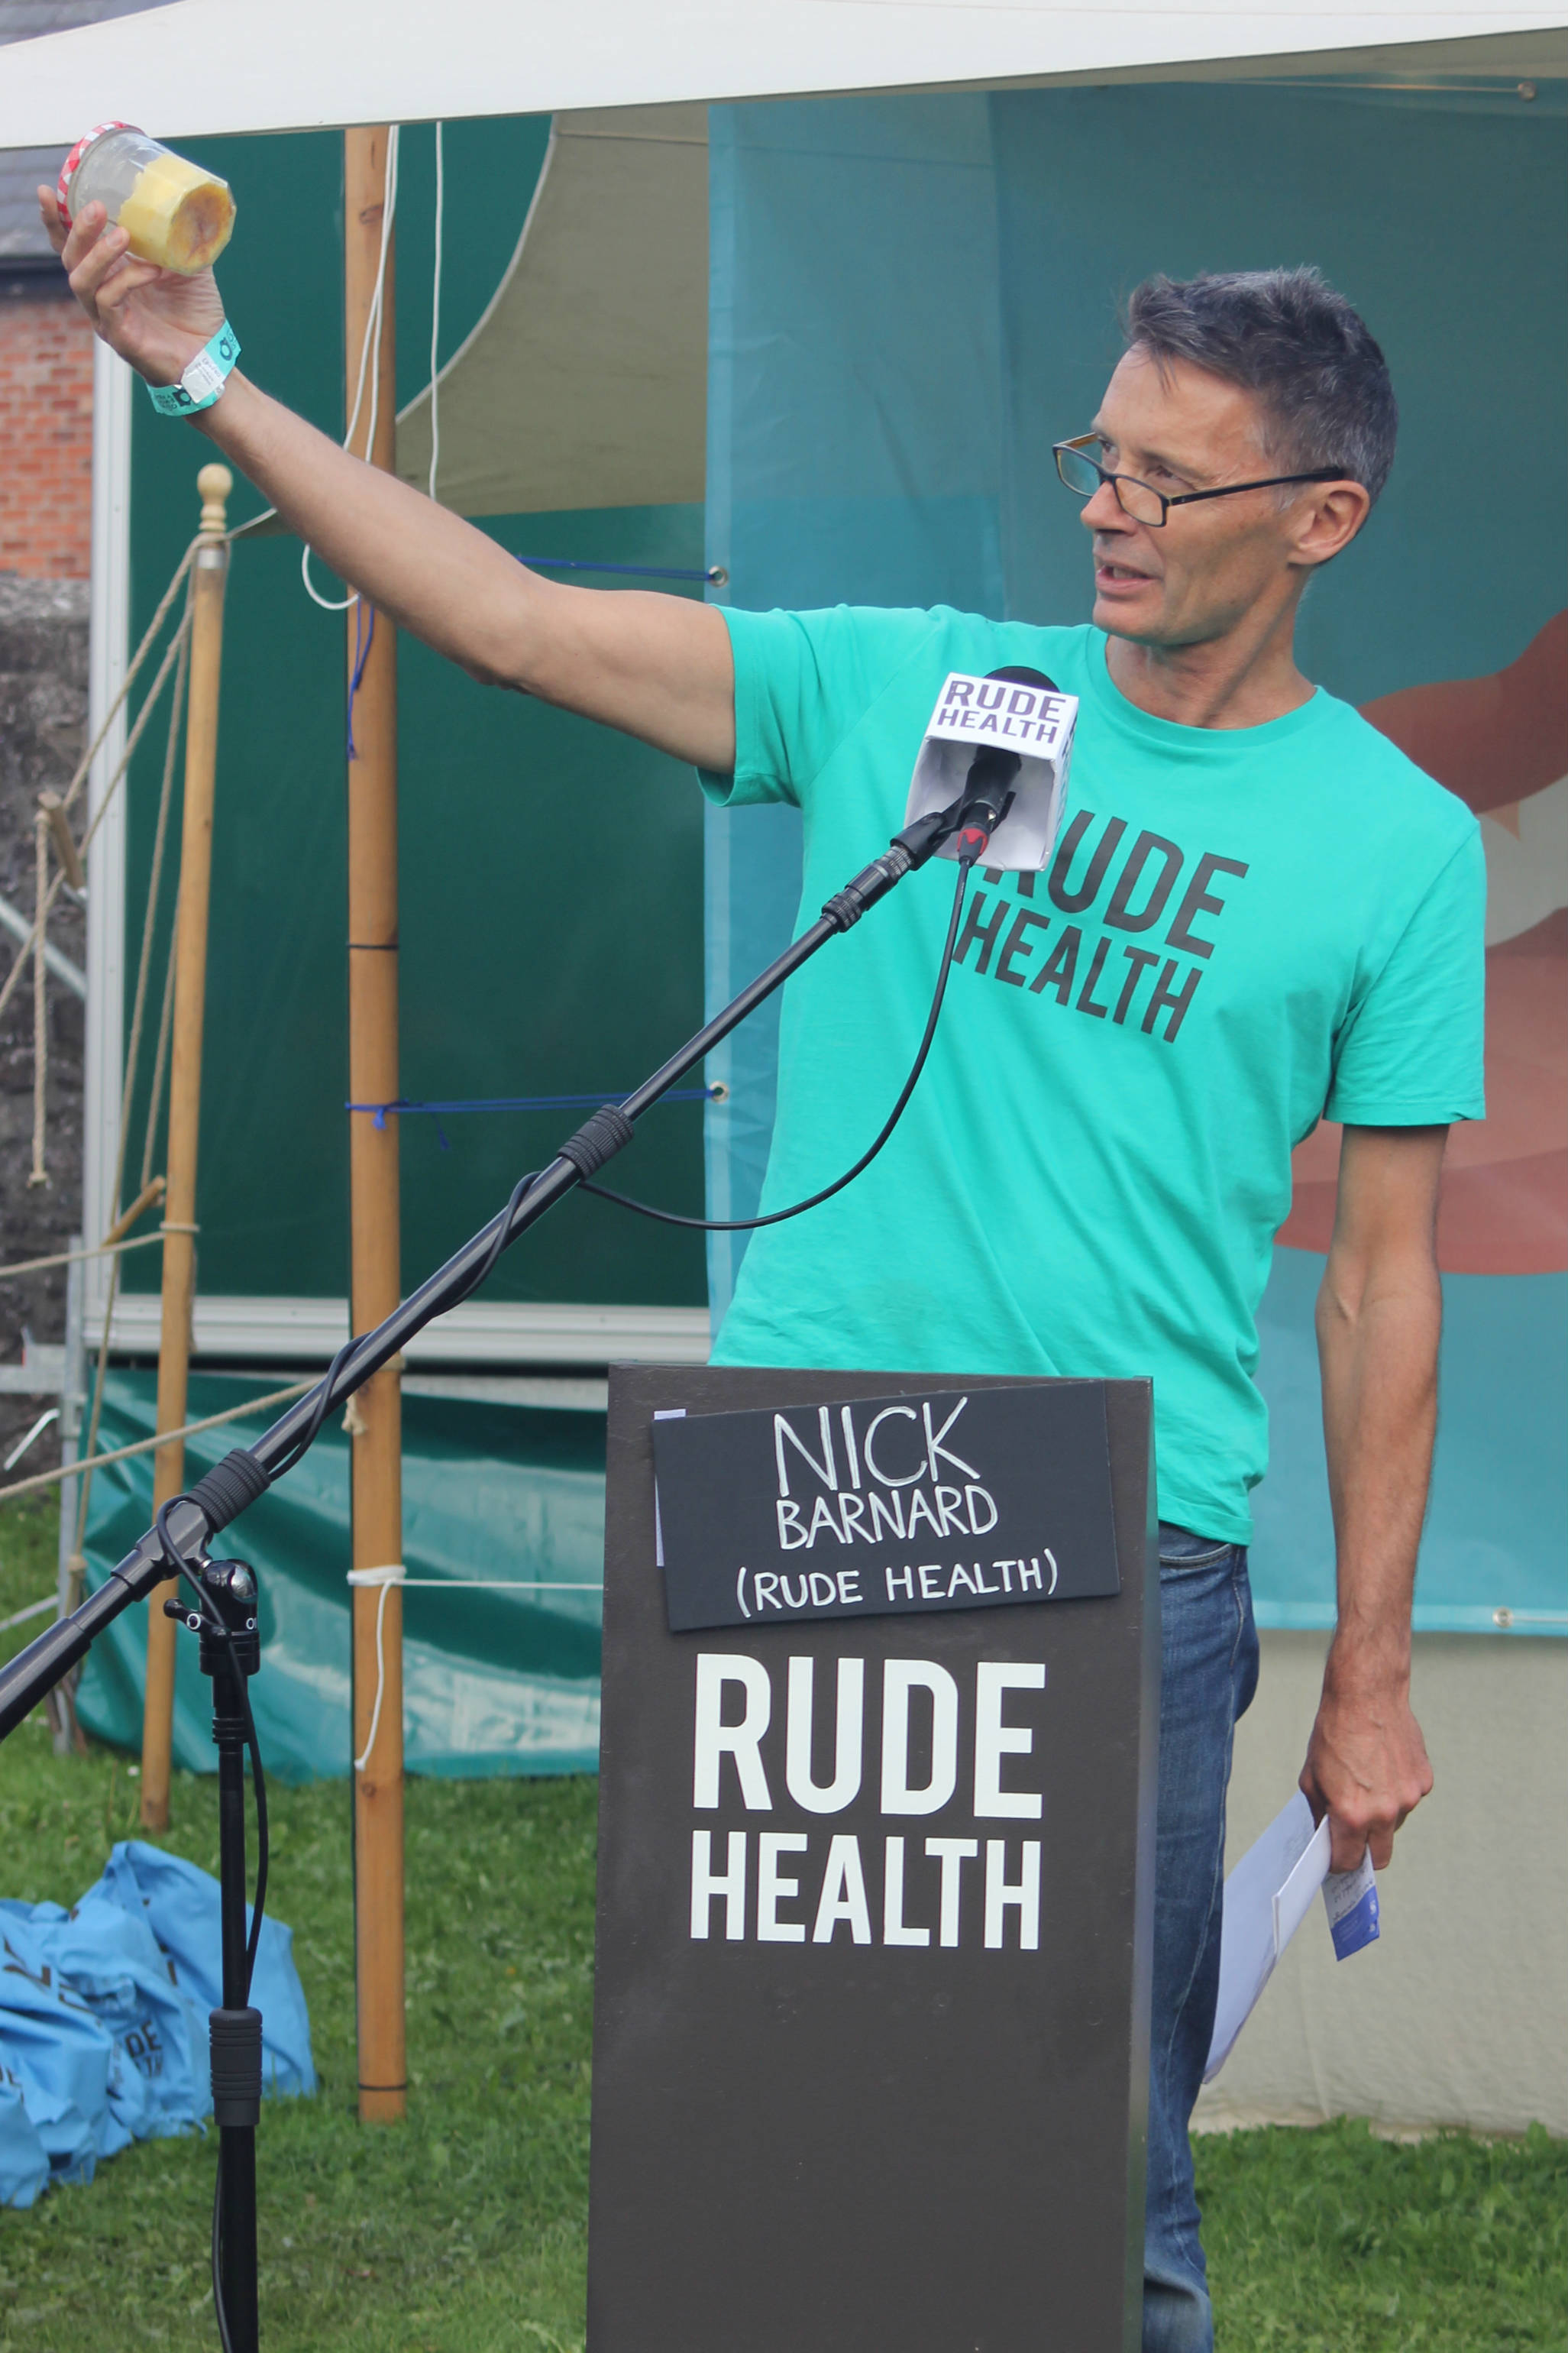 Nick Barnard of Rude Health